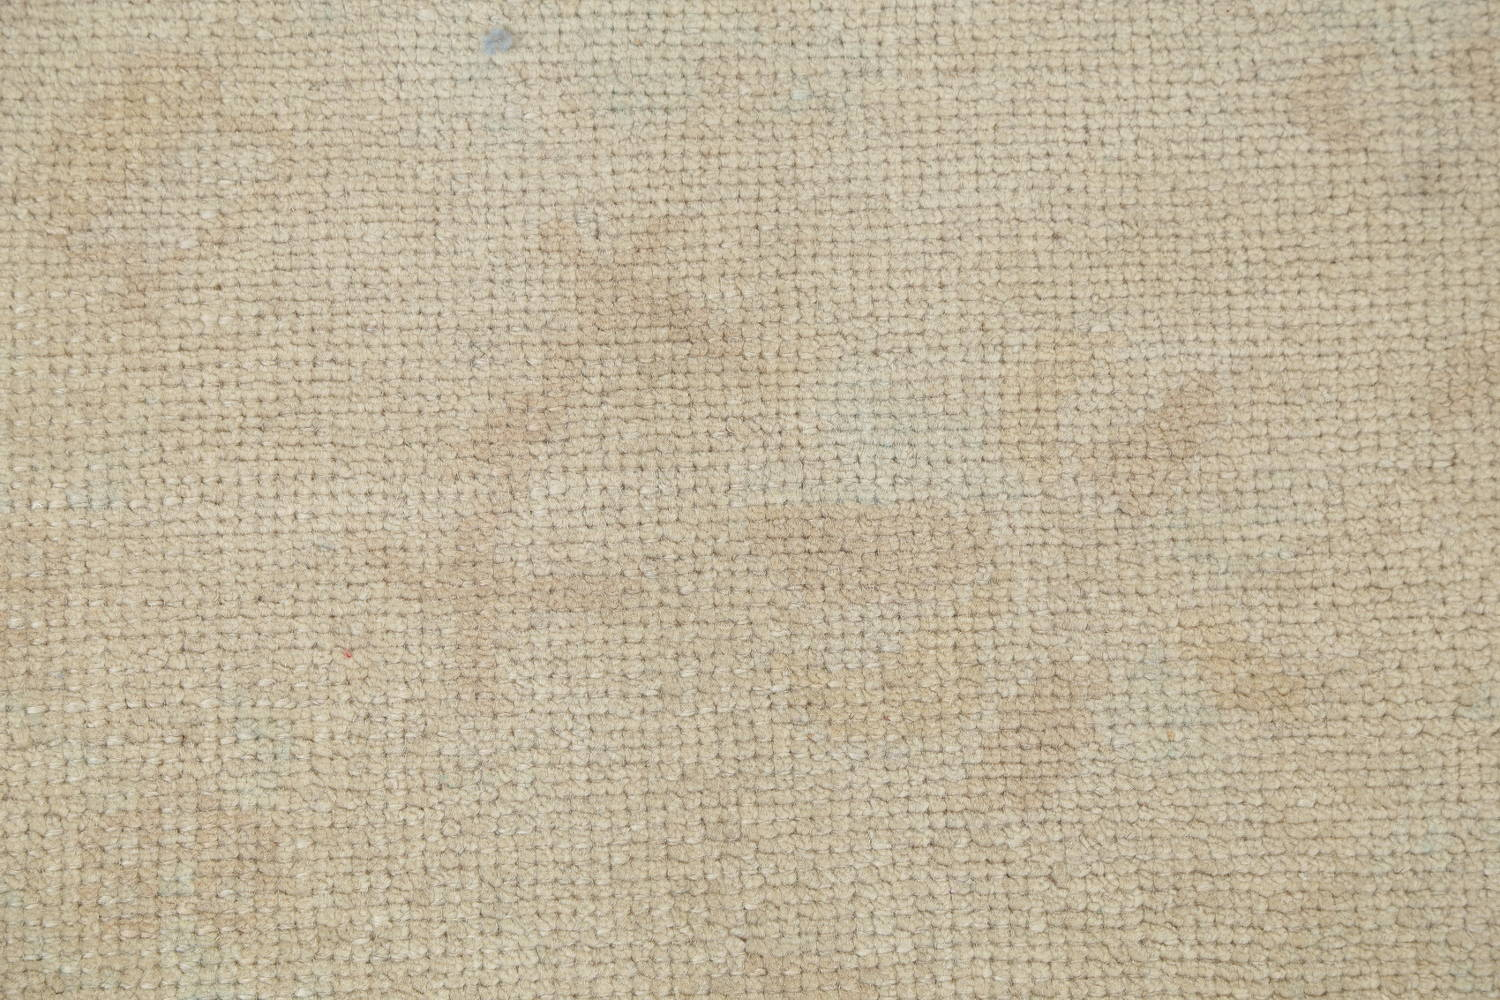 Vegetable Dye Muted Gold Oushak Turkish Hand-Knotted Runner Rug 6x15 image 7